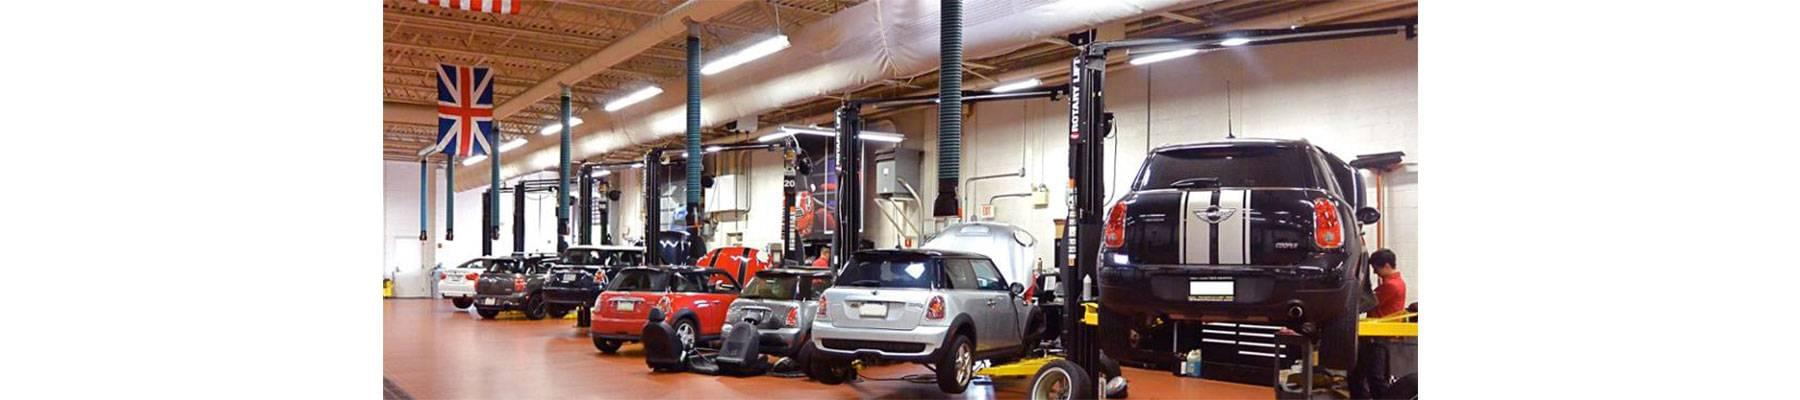 Mini Of Allentown >> Auto Service, Oil Change near Bethlehem | MINI of Allentown